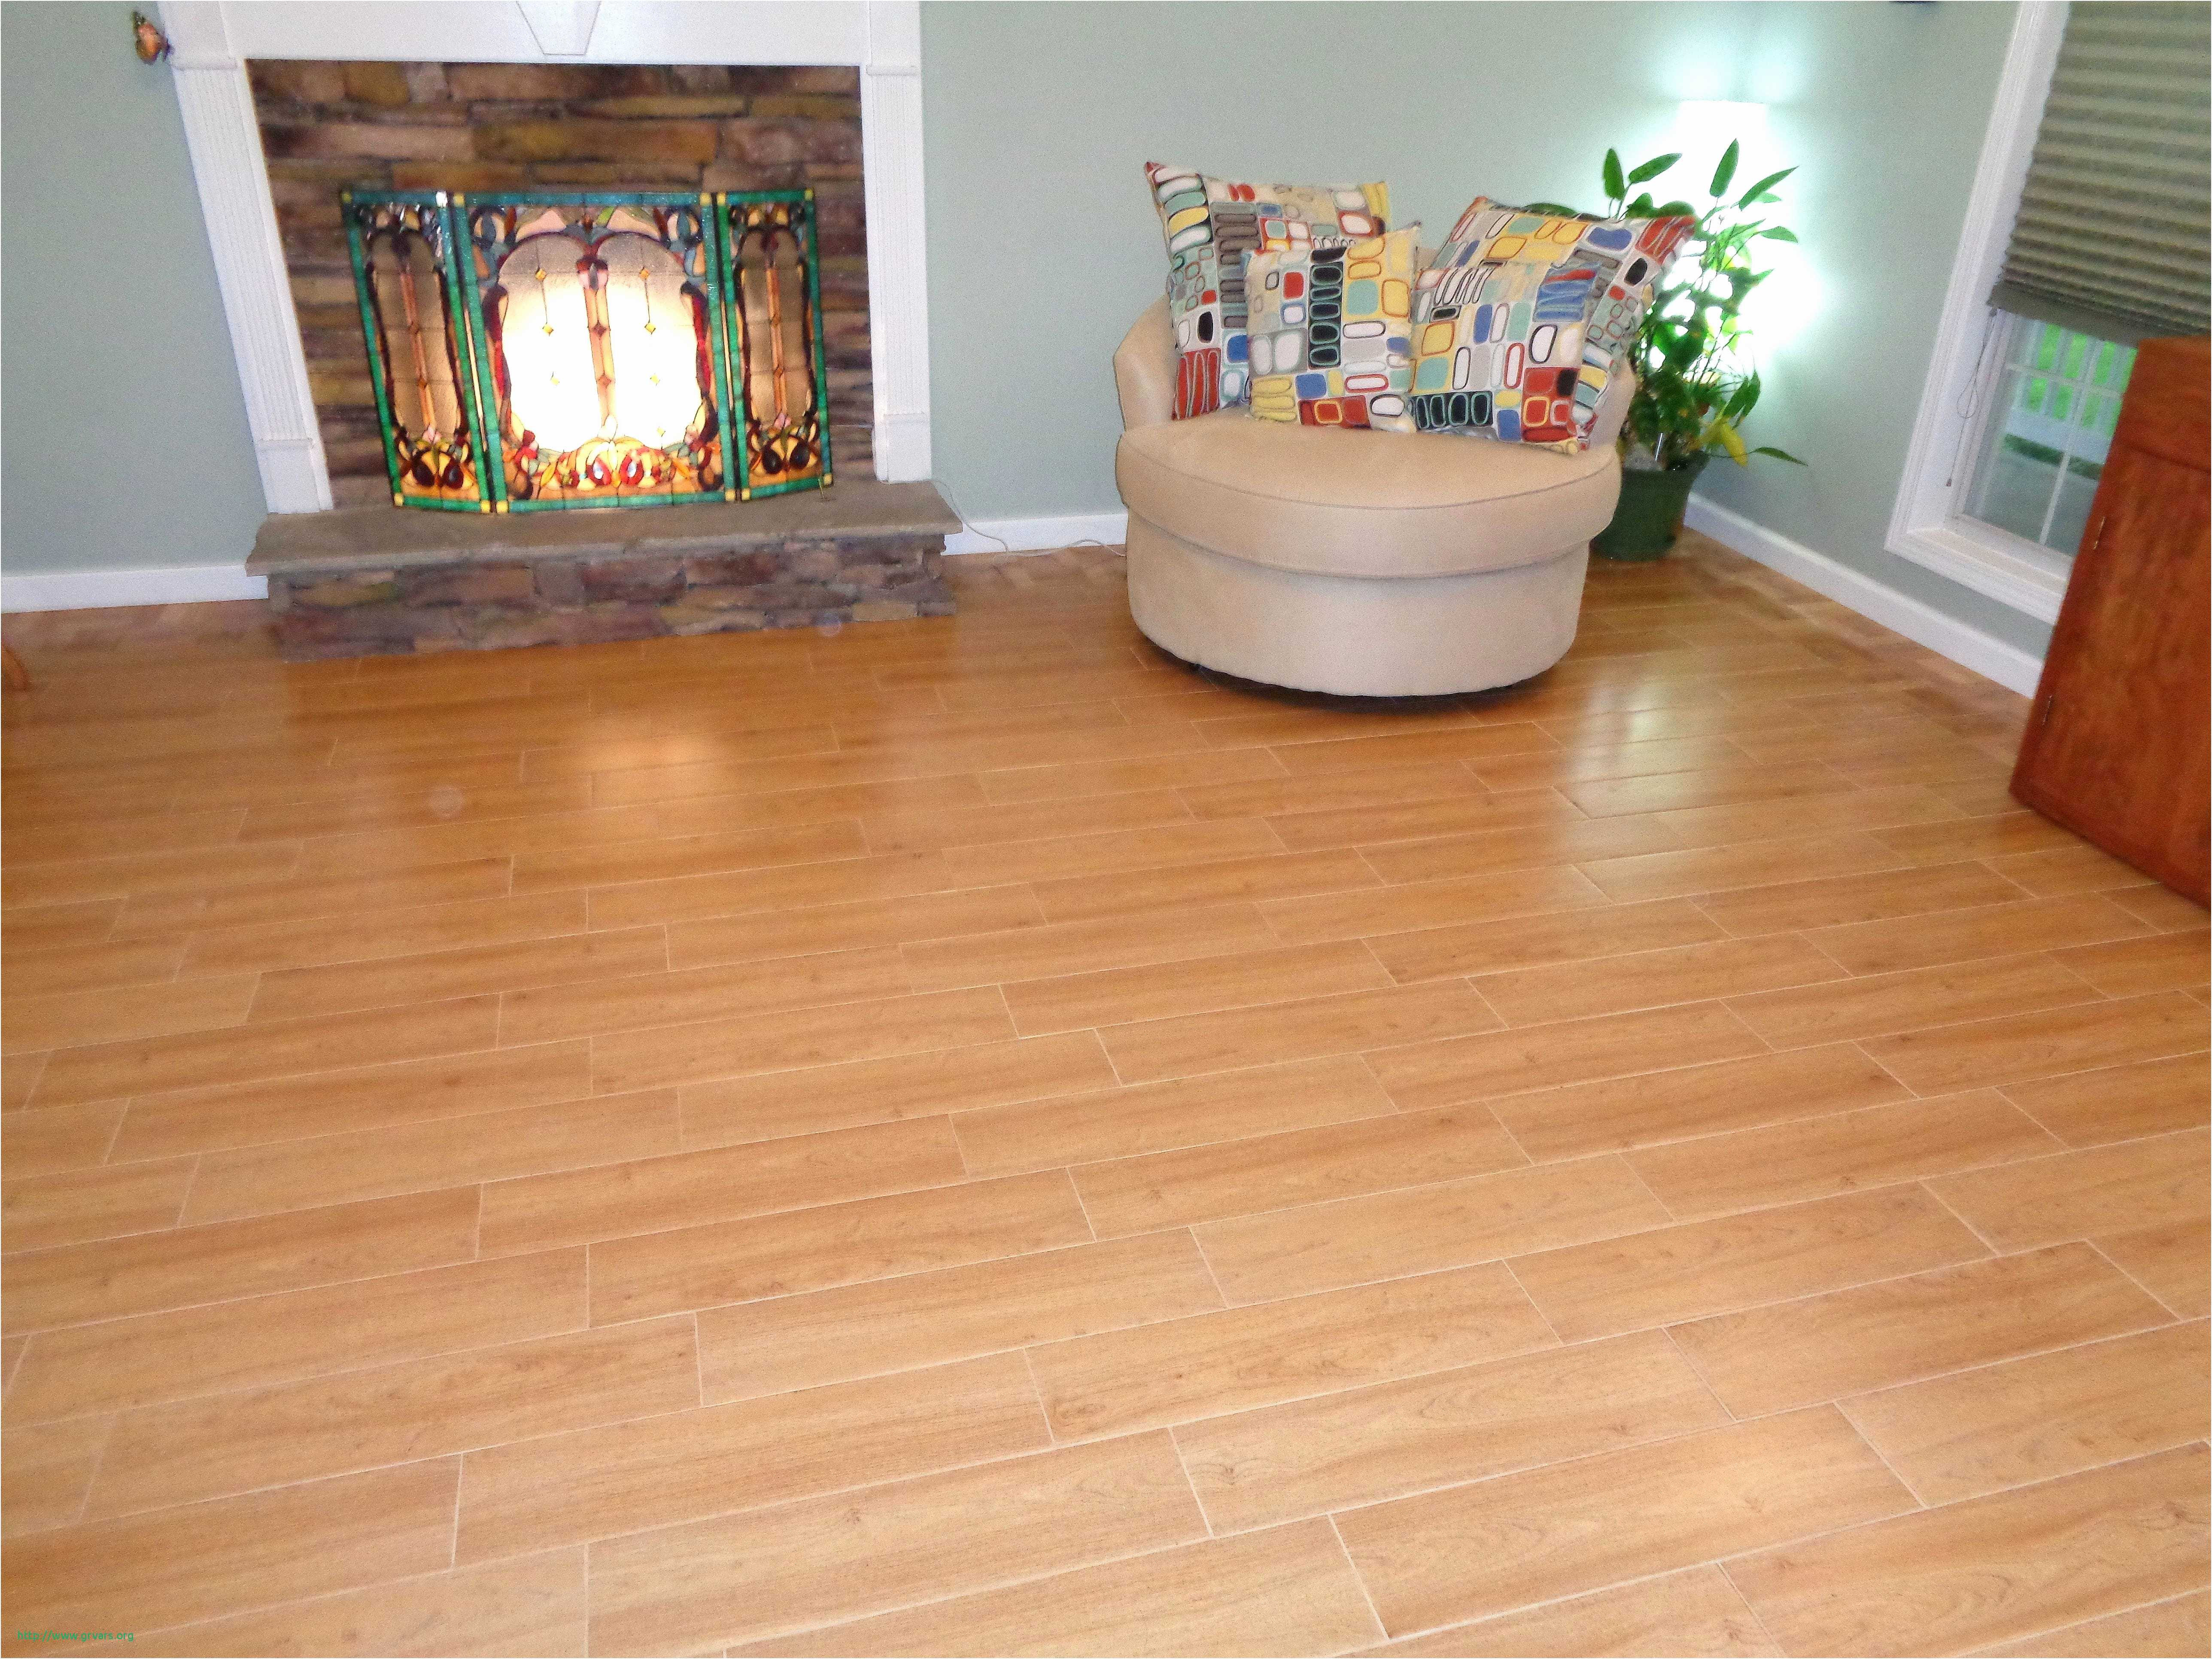 bamboo hardwood flooring durability of 17 beau best wood flooring for the money ideas blog within best wood flooring for the money impressionnant laminated wooden flooring prices guide to solid hardwood floors